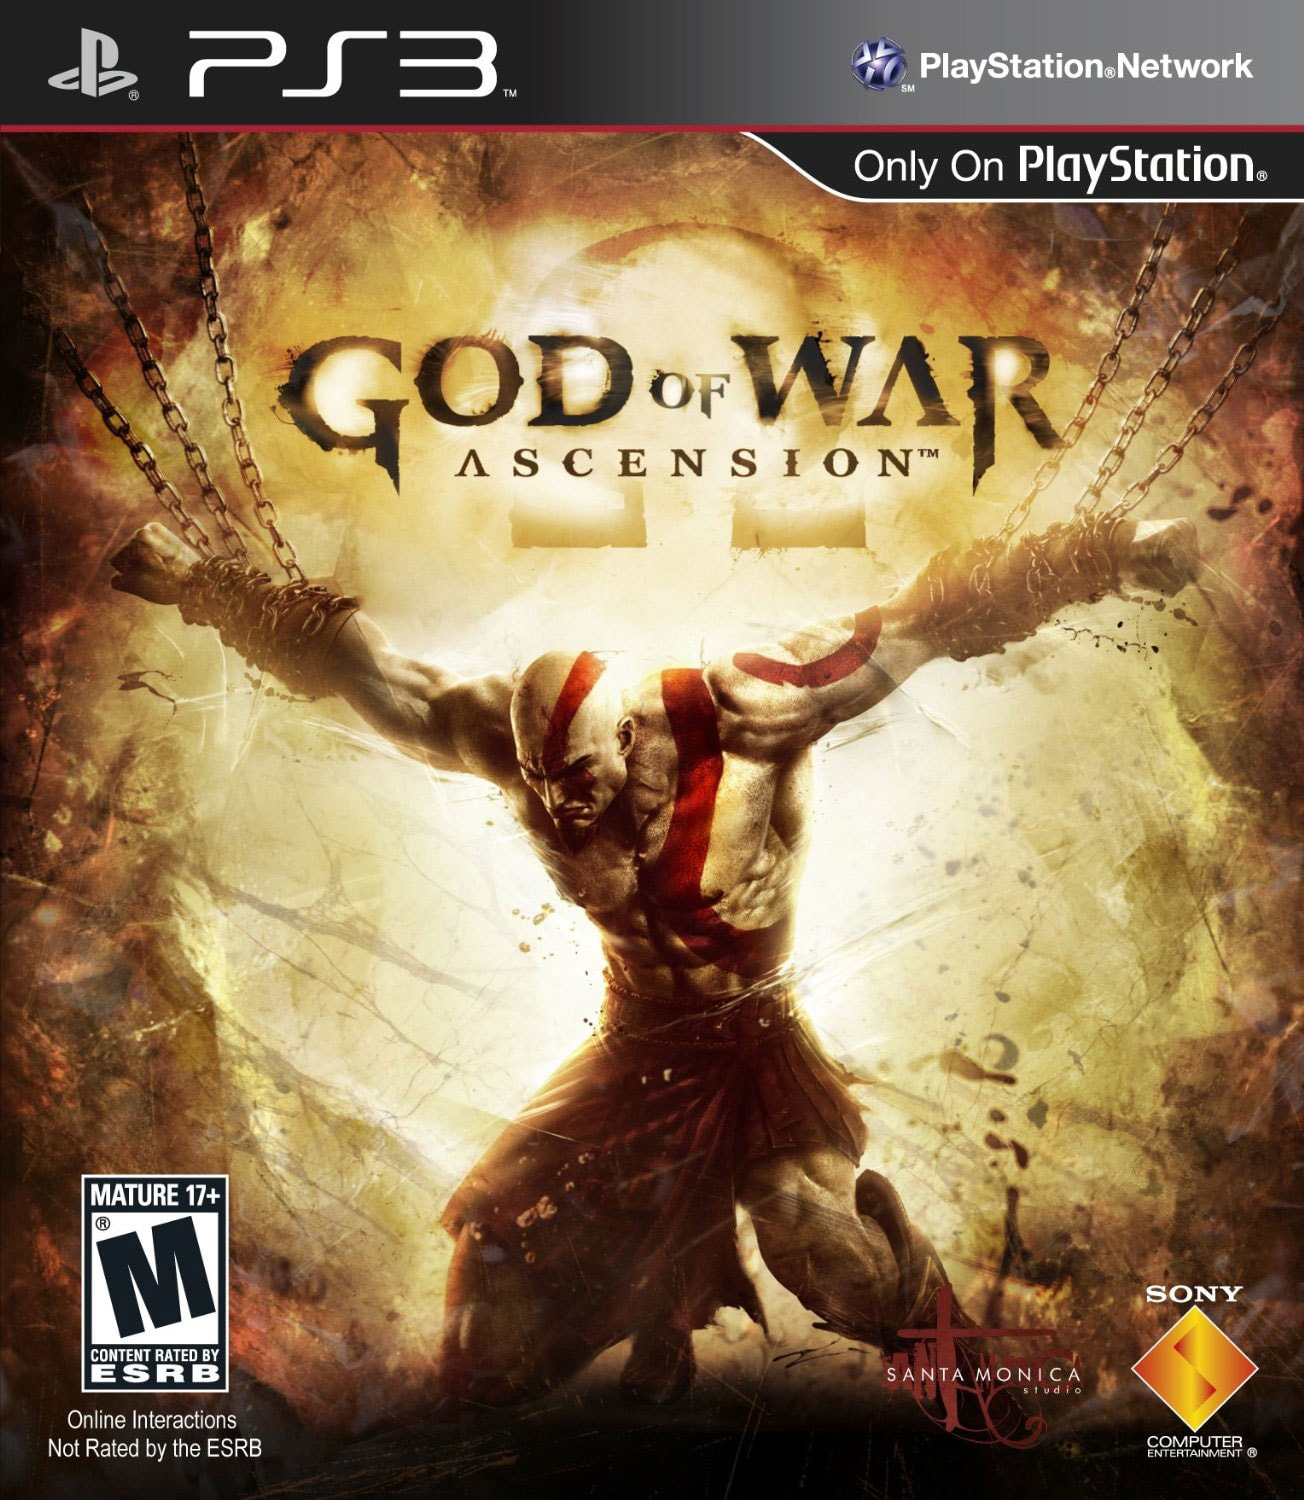 PS3 - God of War: Ascension